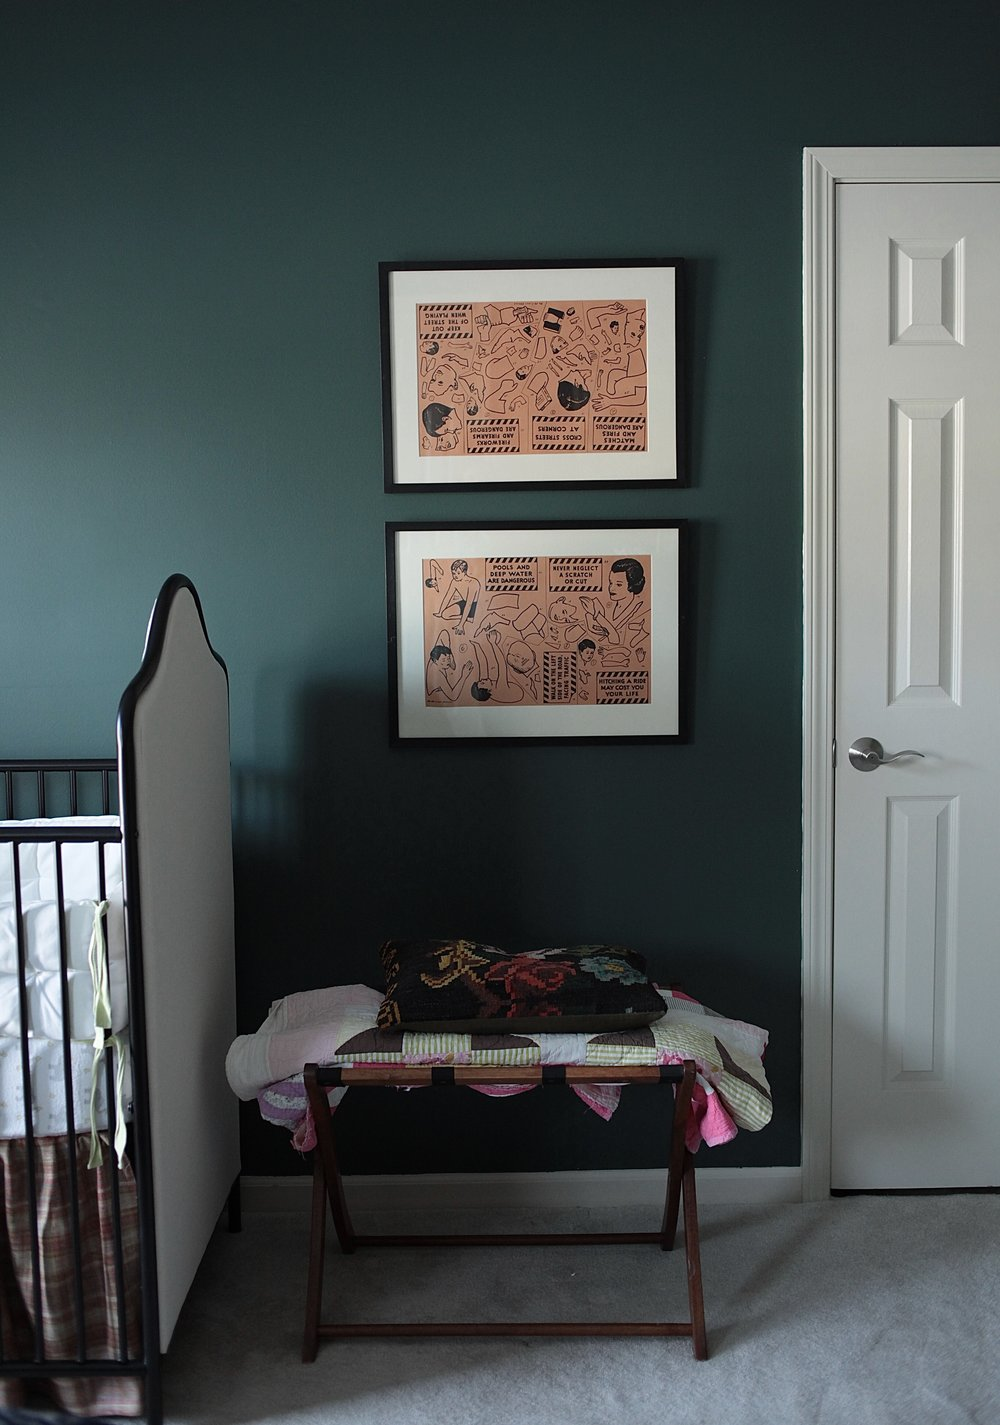 Goodwin Green paint color and peach art